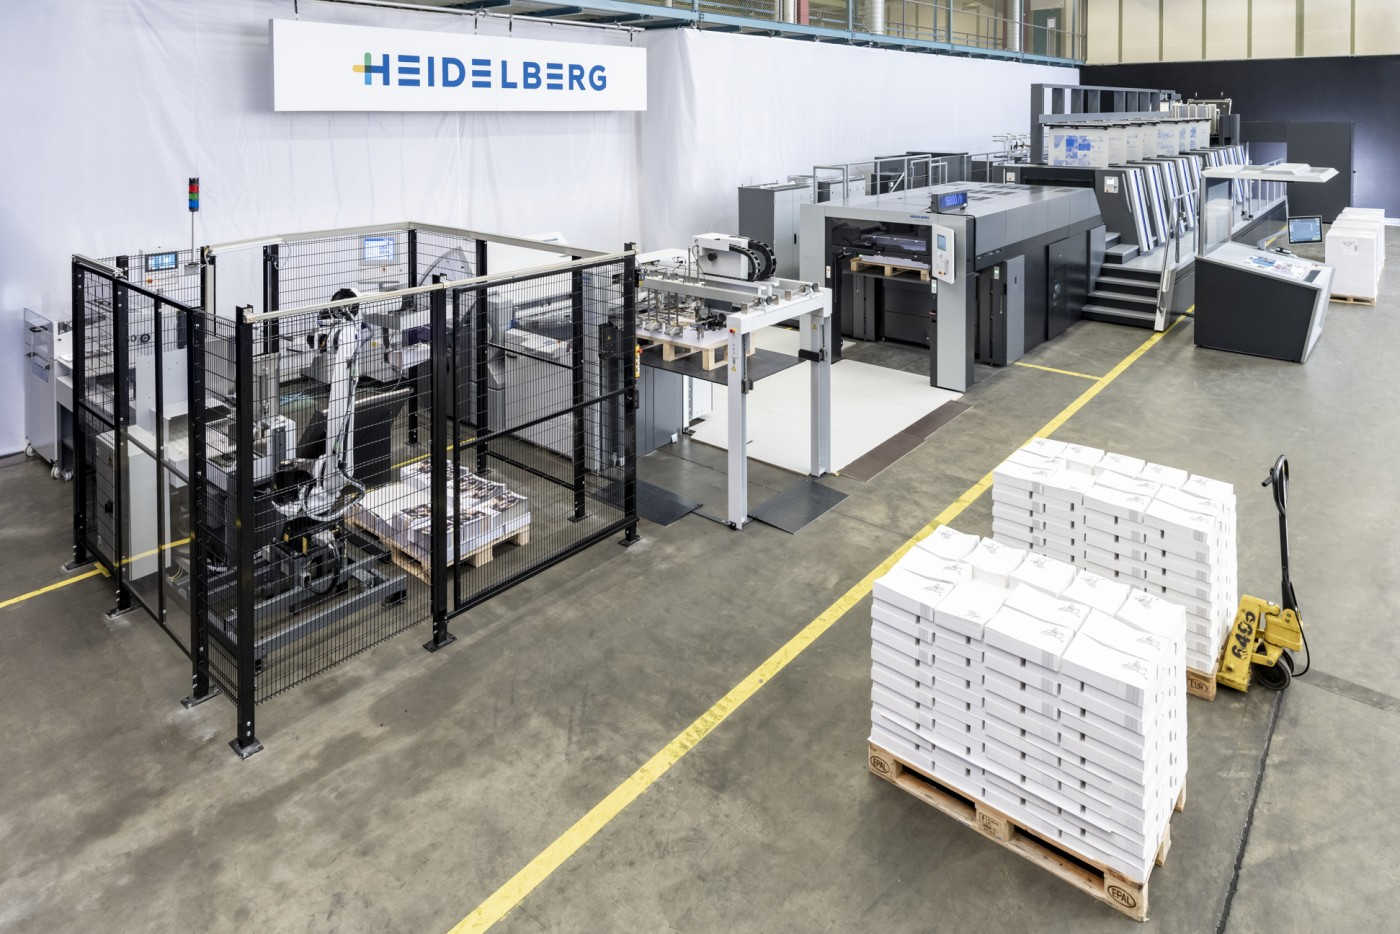 Heidelberg's Innovation Week Promotes Investment Activity in Challenging Times